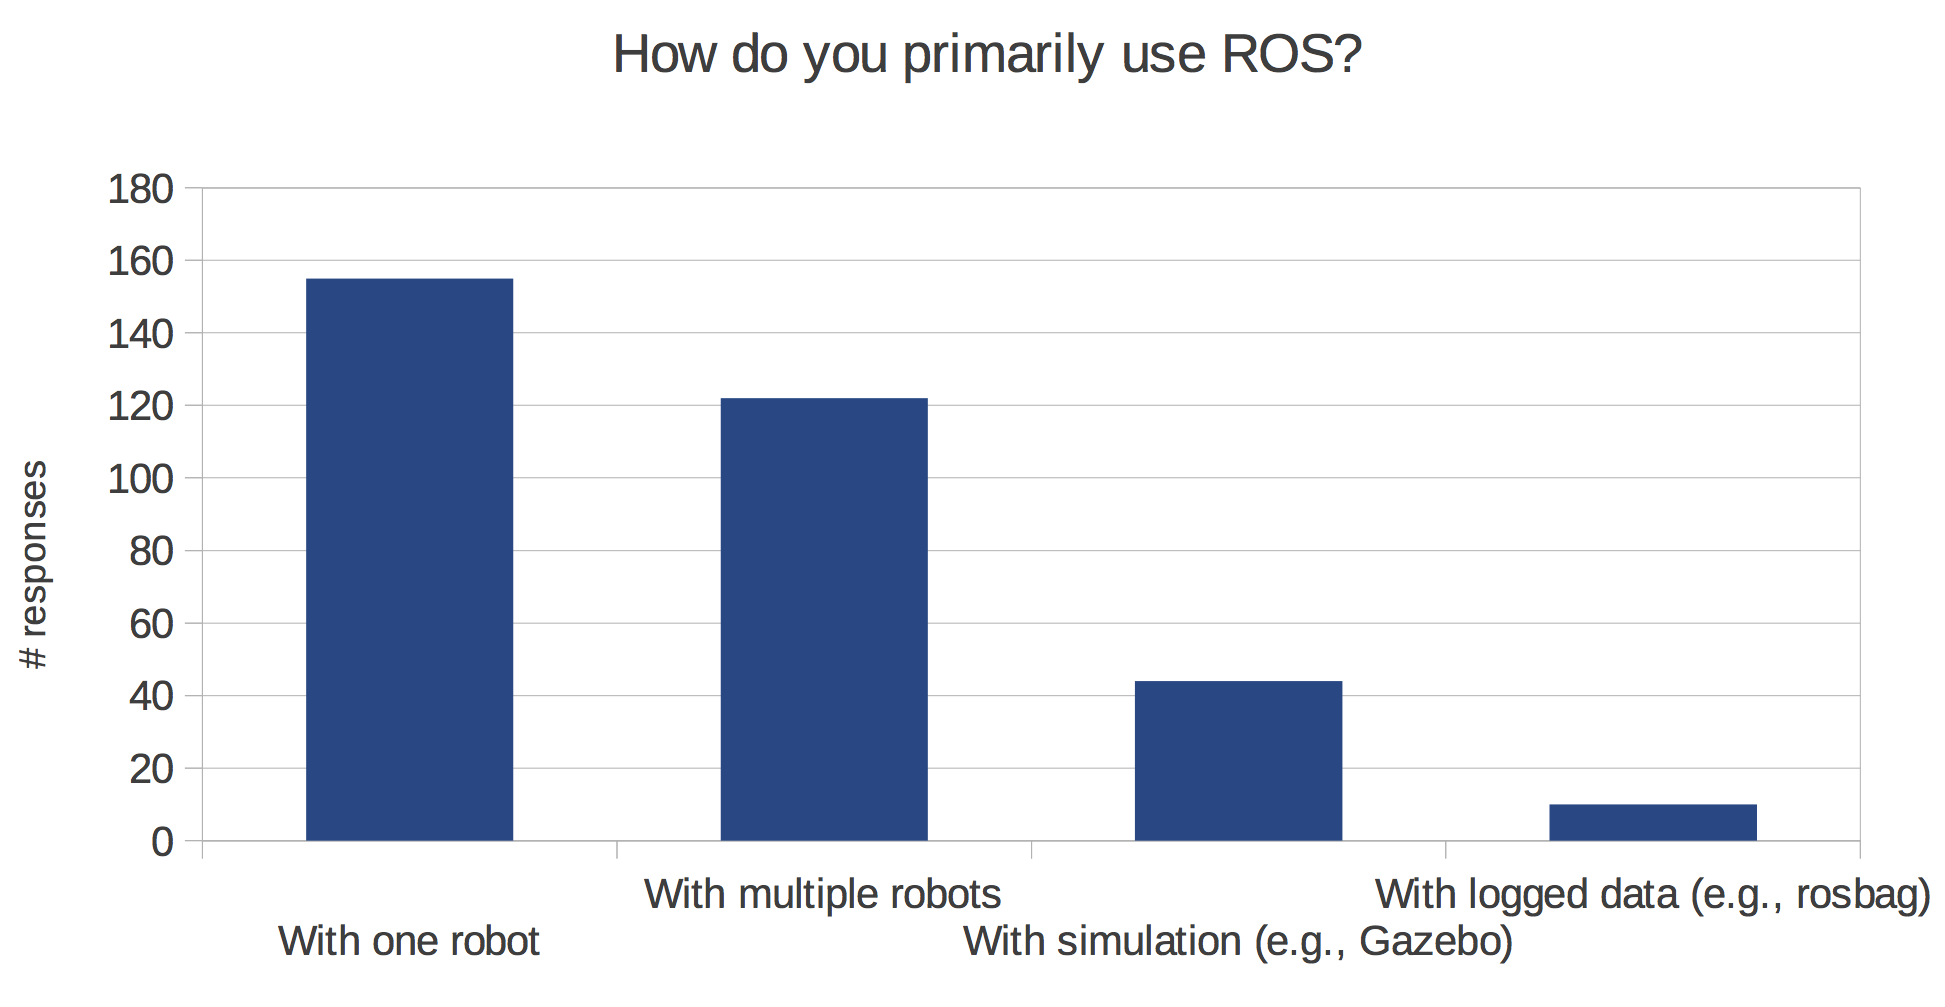 http://www.ros.org/news/2014/04/01/how-use-ros.png